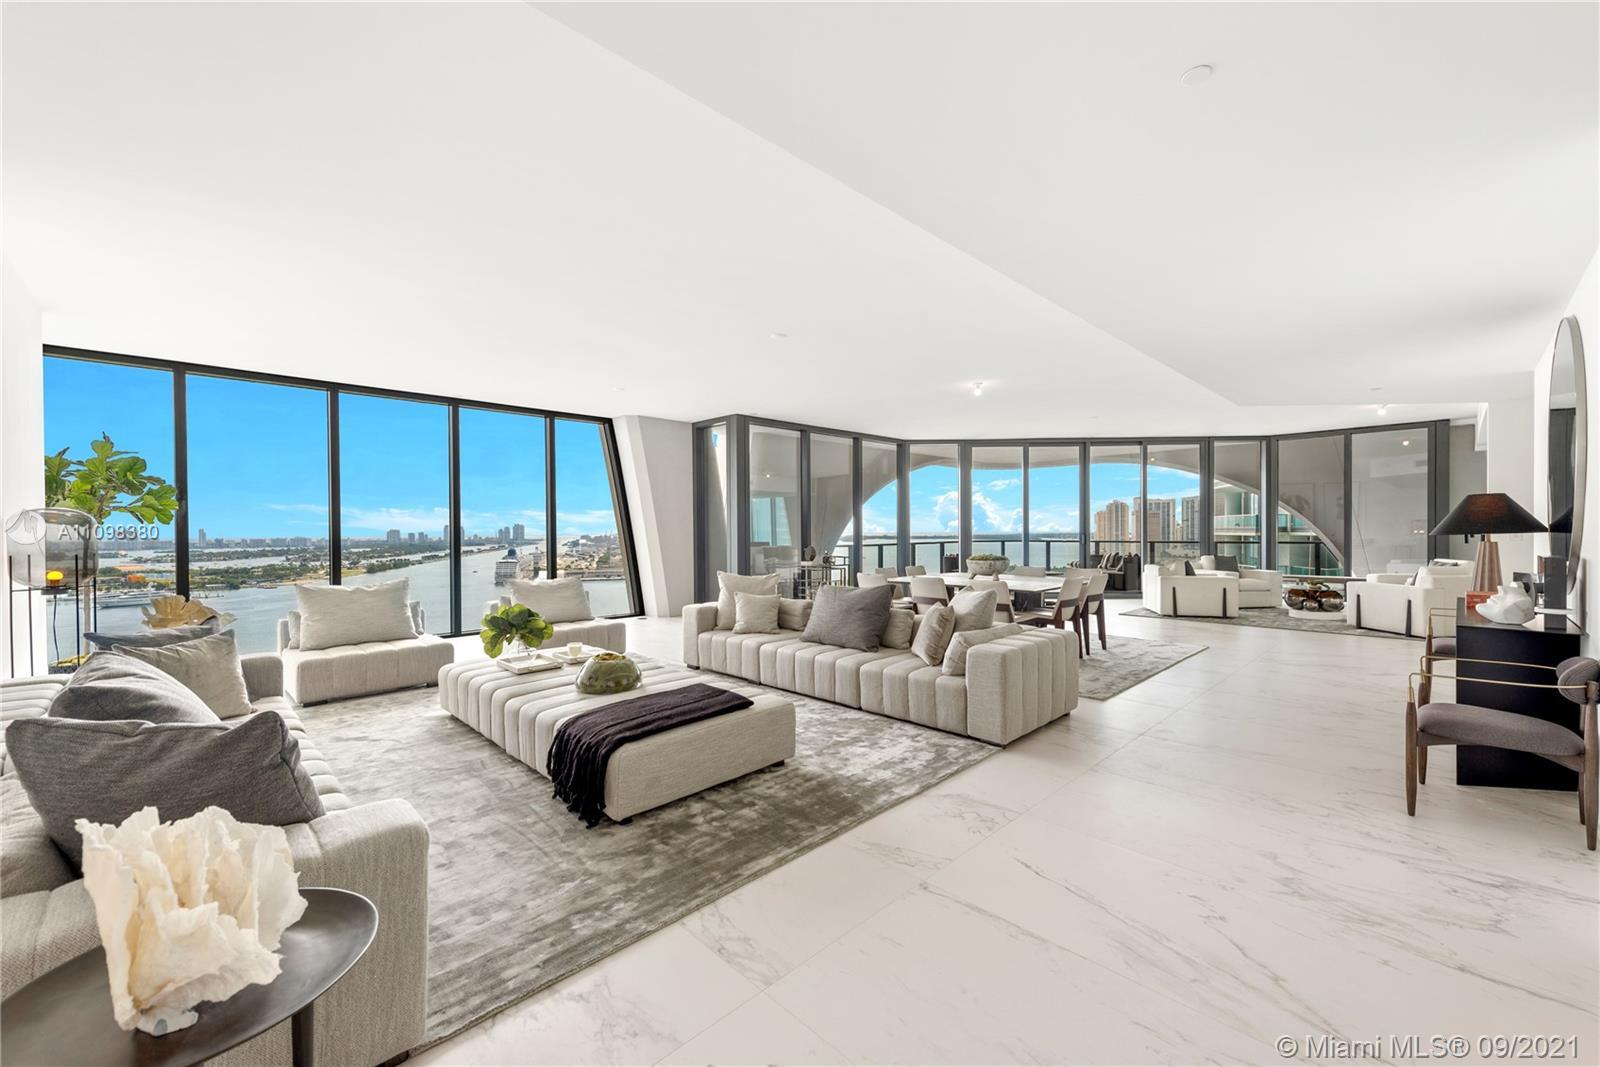 Experience extravagant condo living in Miami's most impressive architectural masterpiece designed by